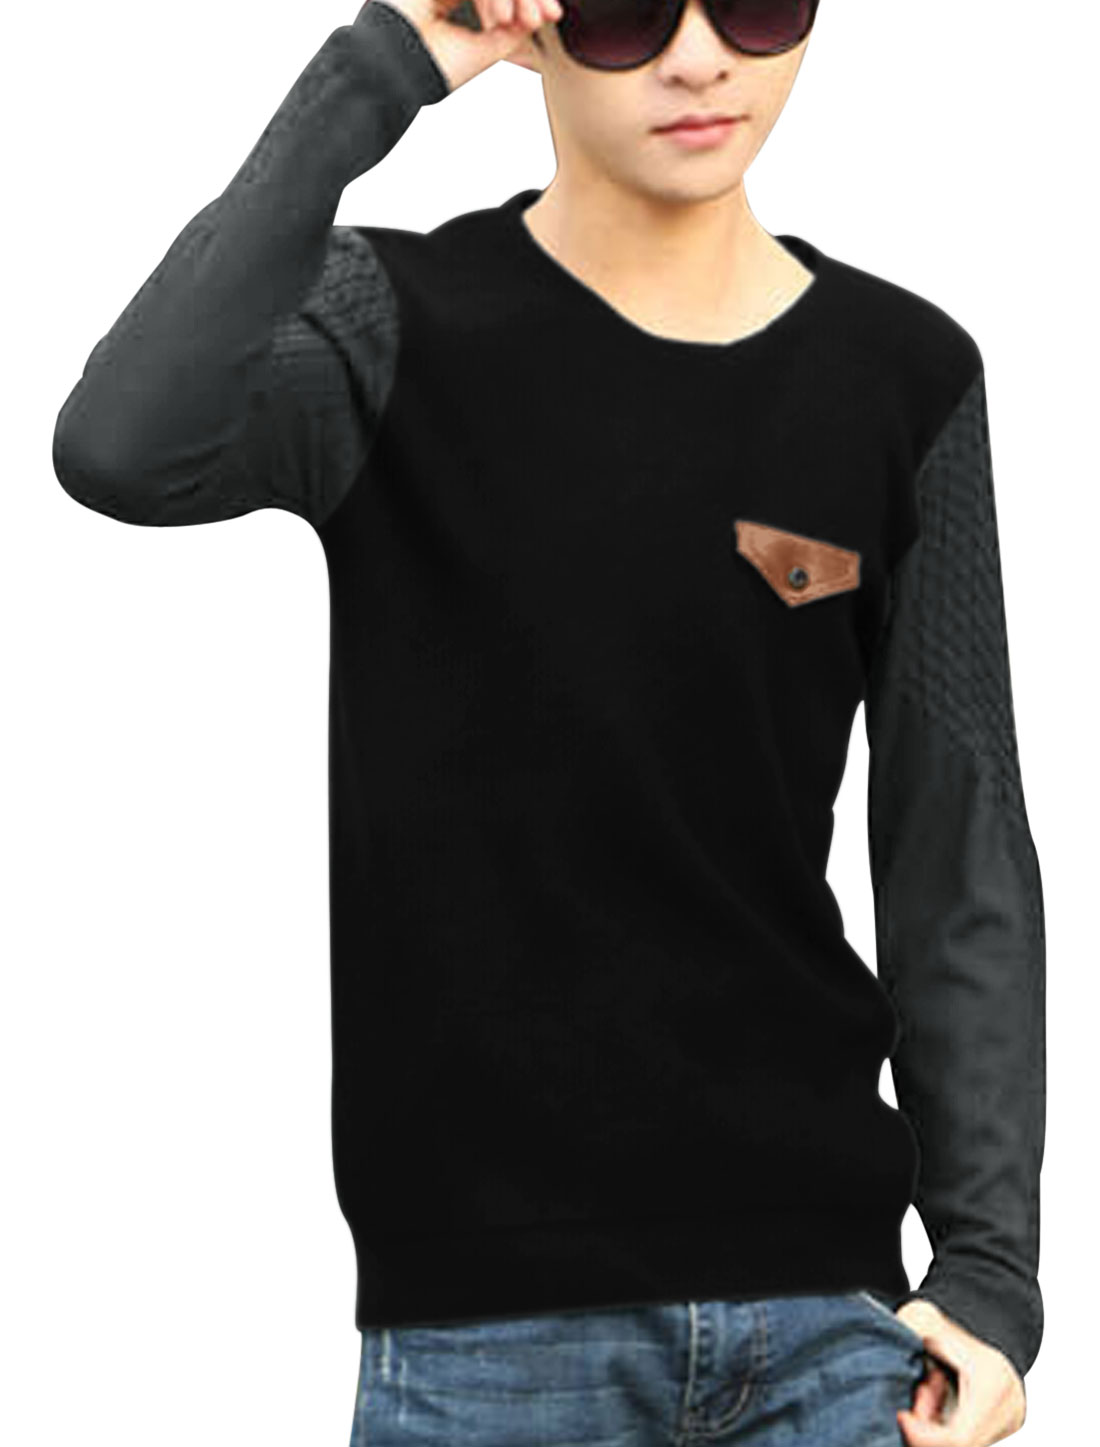 Men Contrast Color Mock Chest Pocket Slipover Casual Knit Shirt Black S